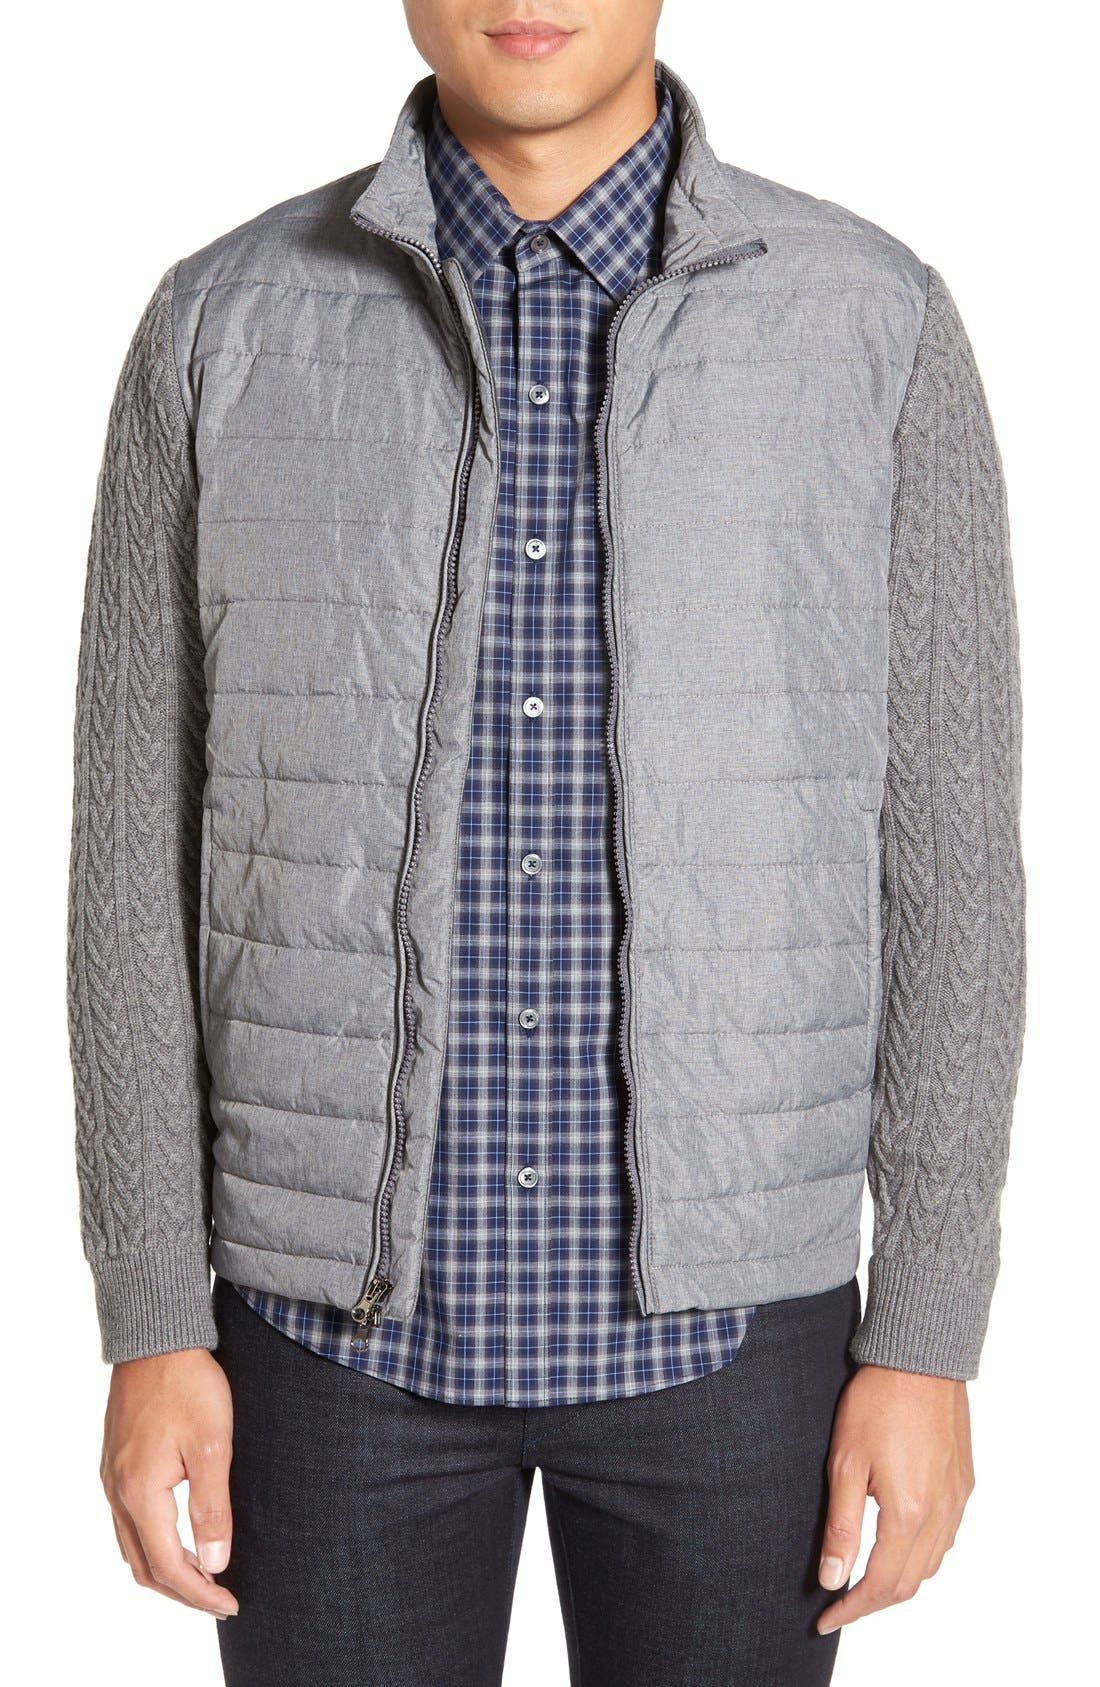 'Beacon' Trim Fit Quilted Cable Knit Zip Sweater,                         Main,                         color, Grey